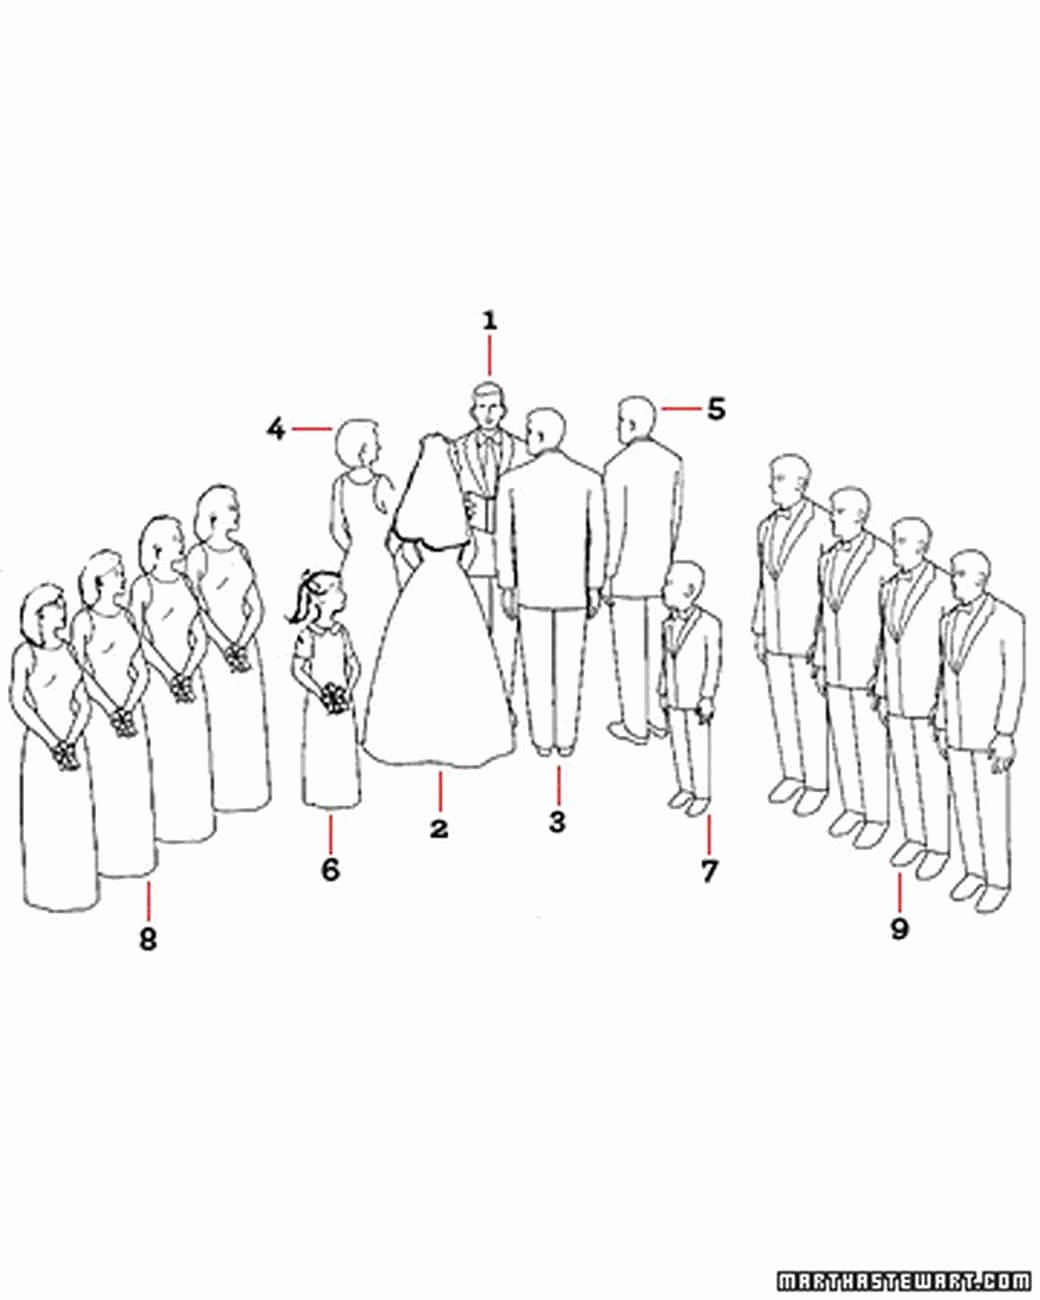 Wedding Party Lineup Template Beautiful Diagram Your Big Day Christian Wedding Ceremony Basics